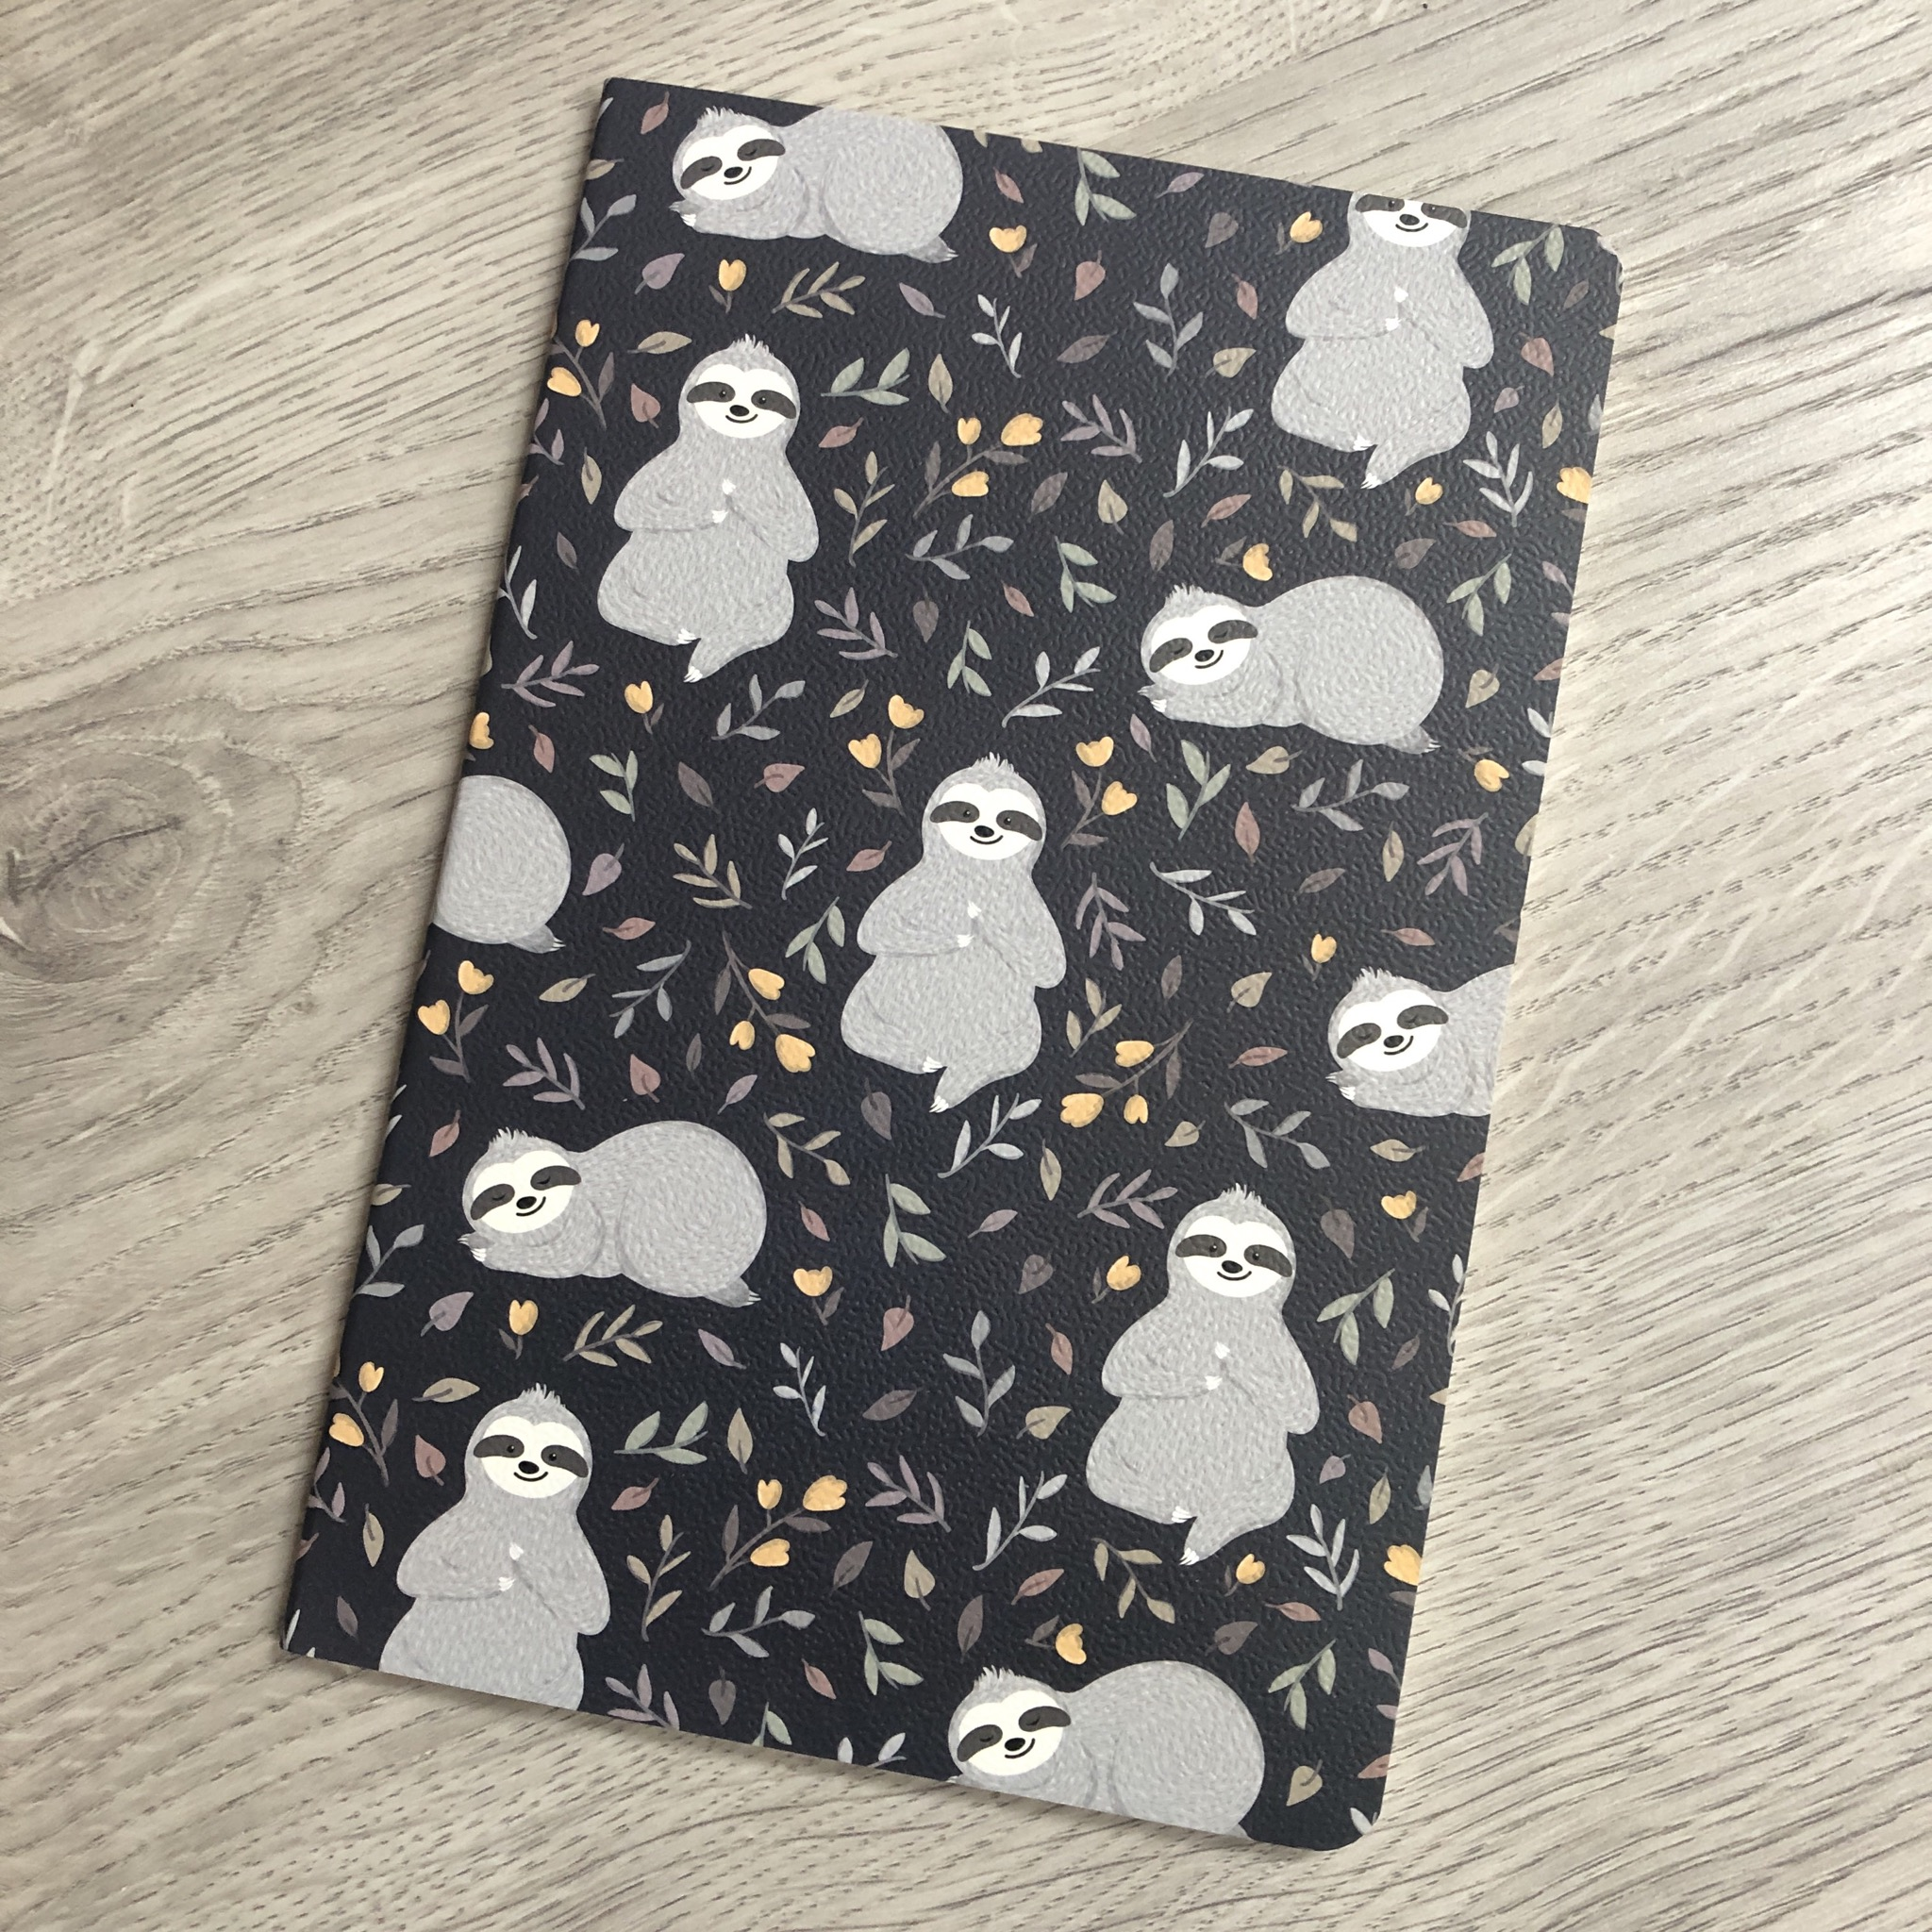 Sloth notebook. Lined paper notebook.